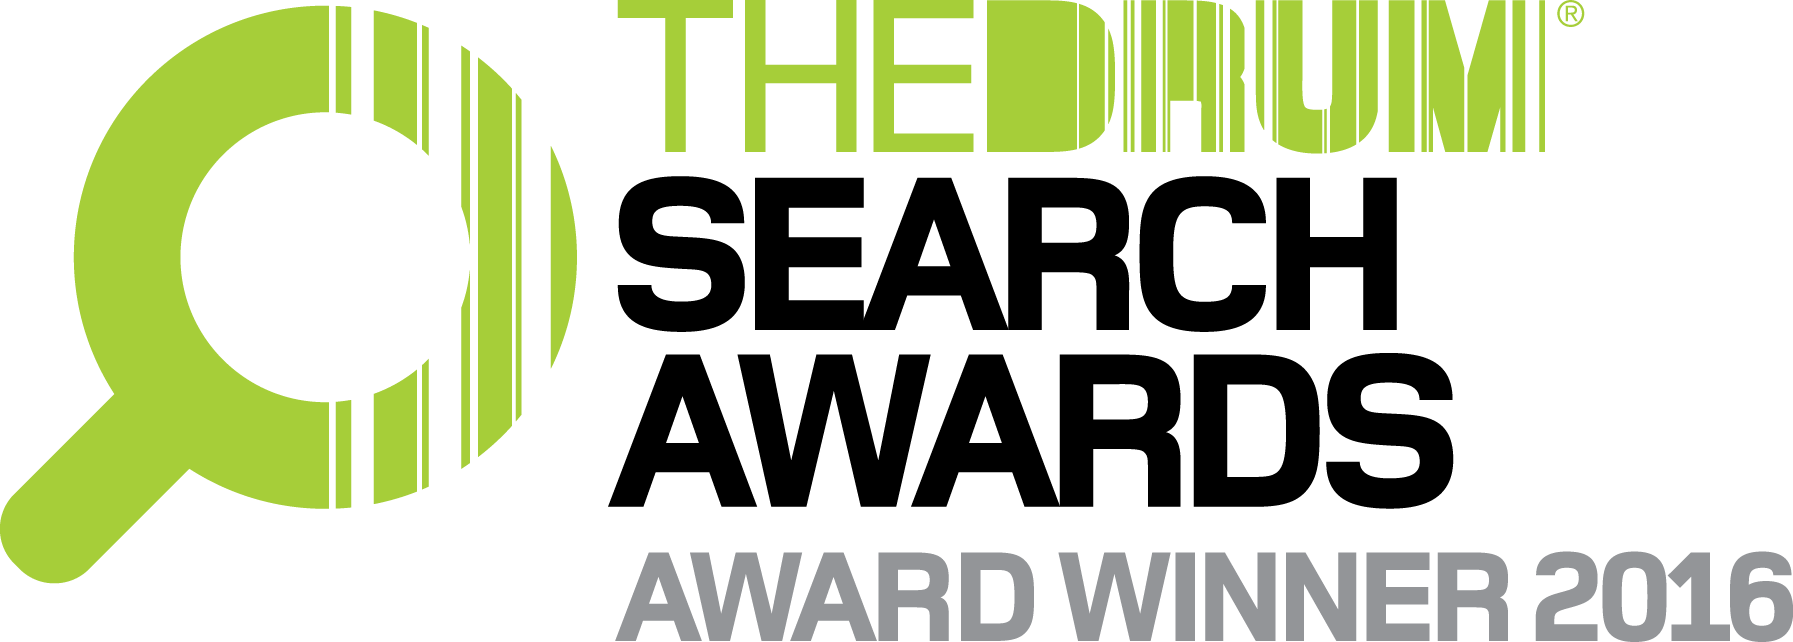 The Drum Search Award Winner 2106 Image